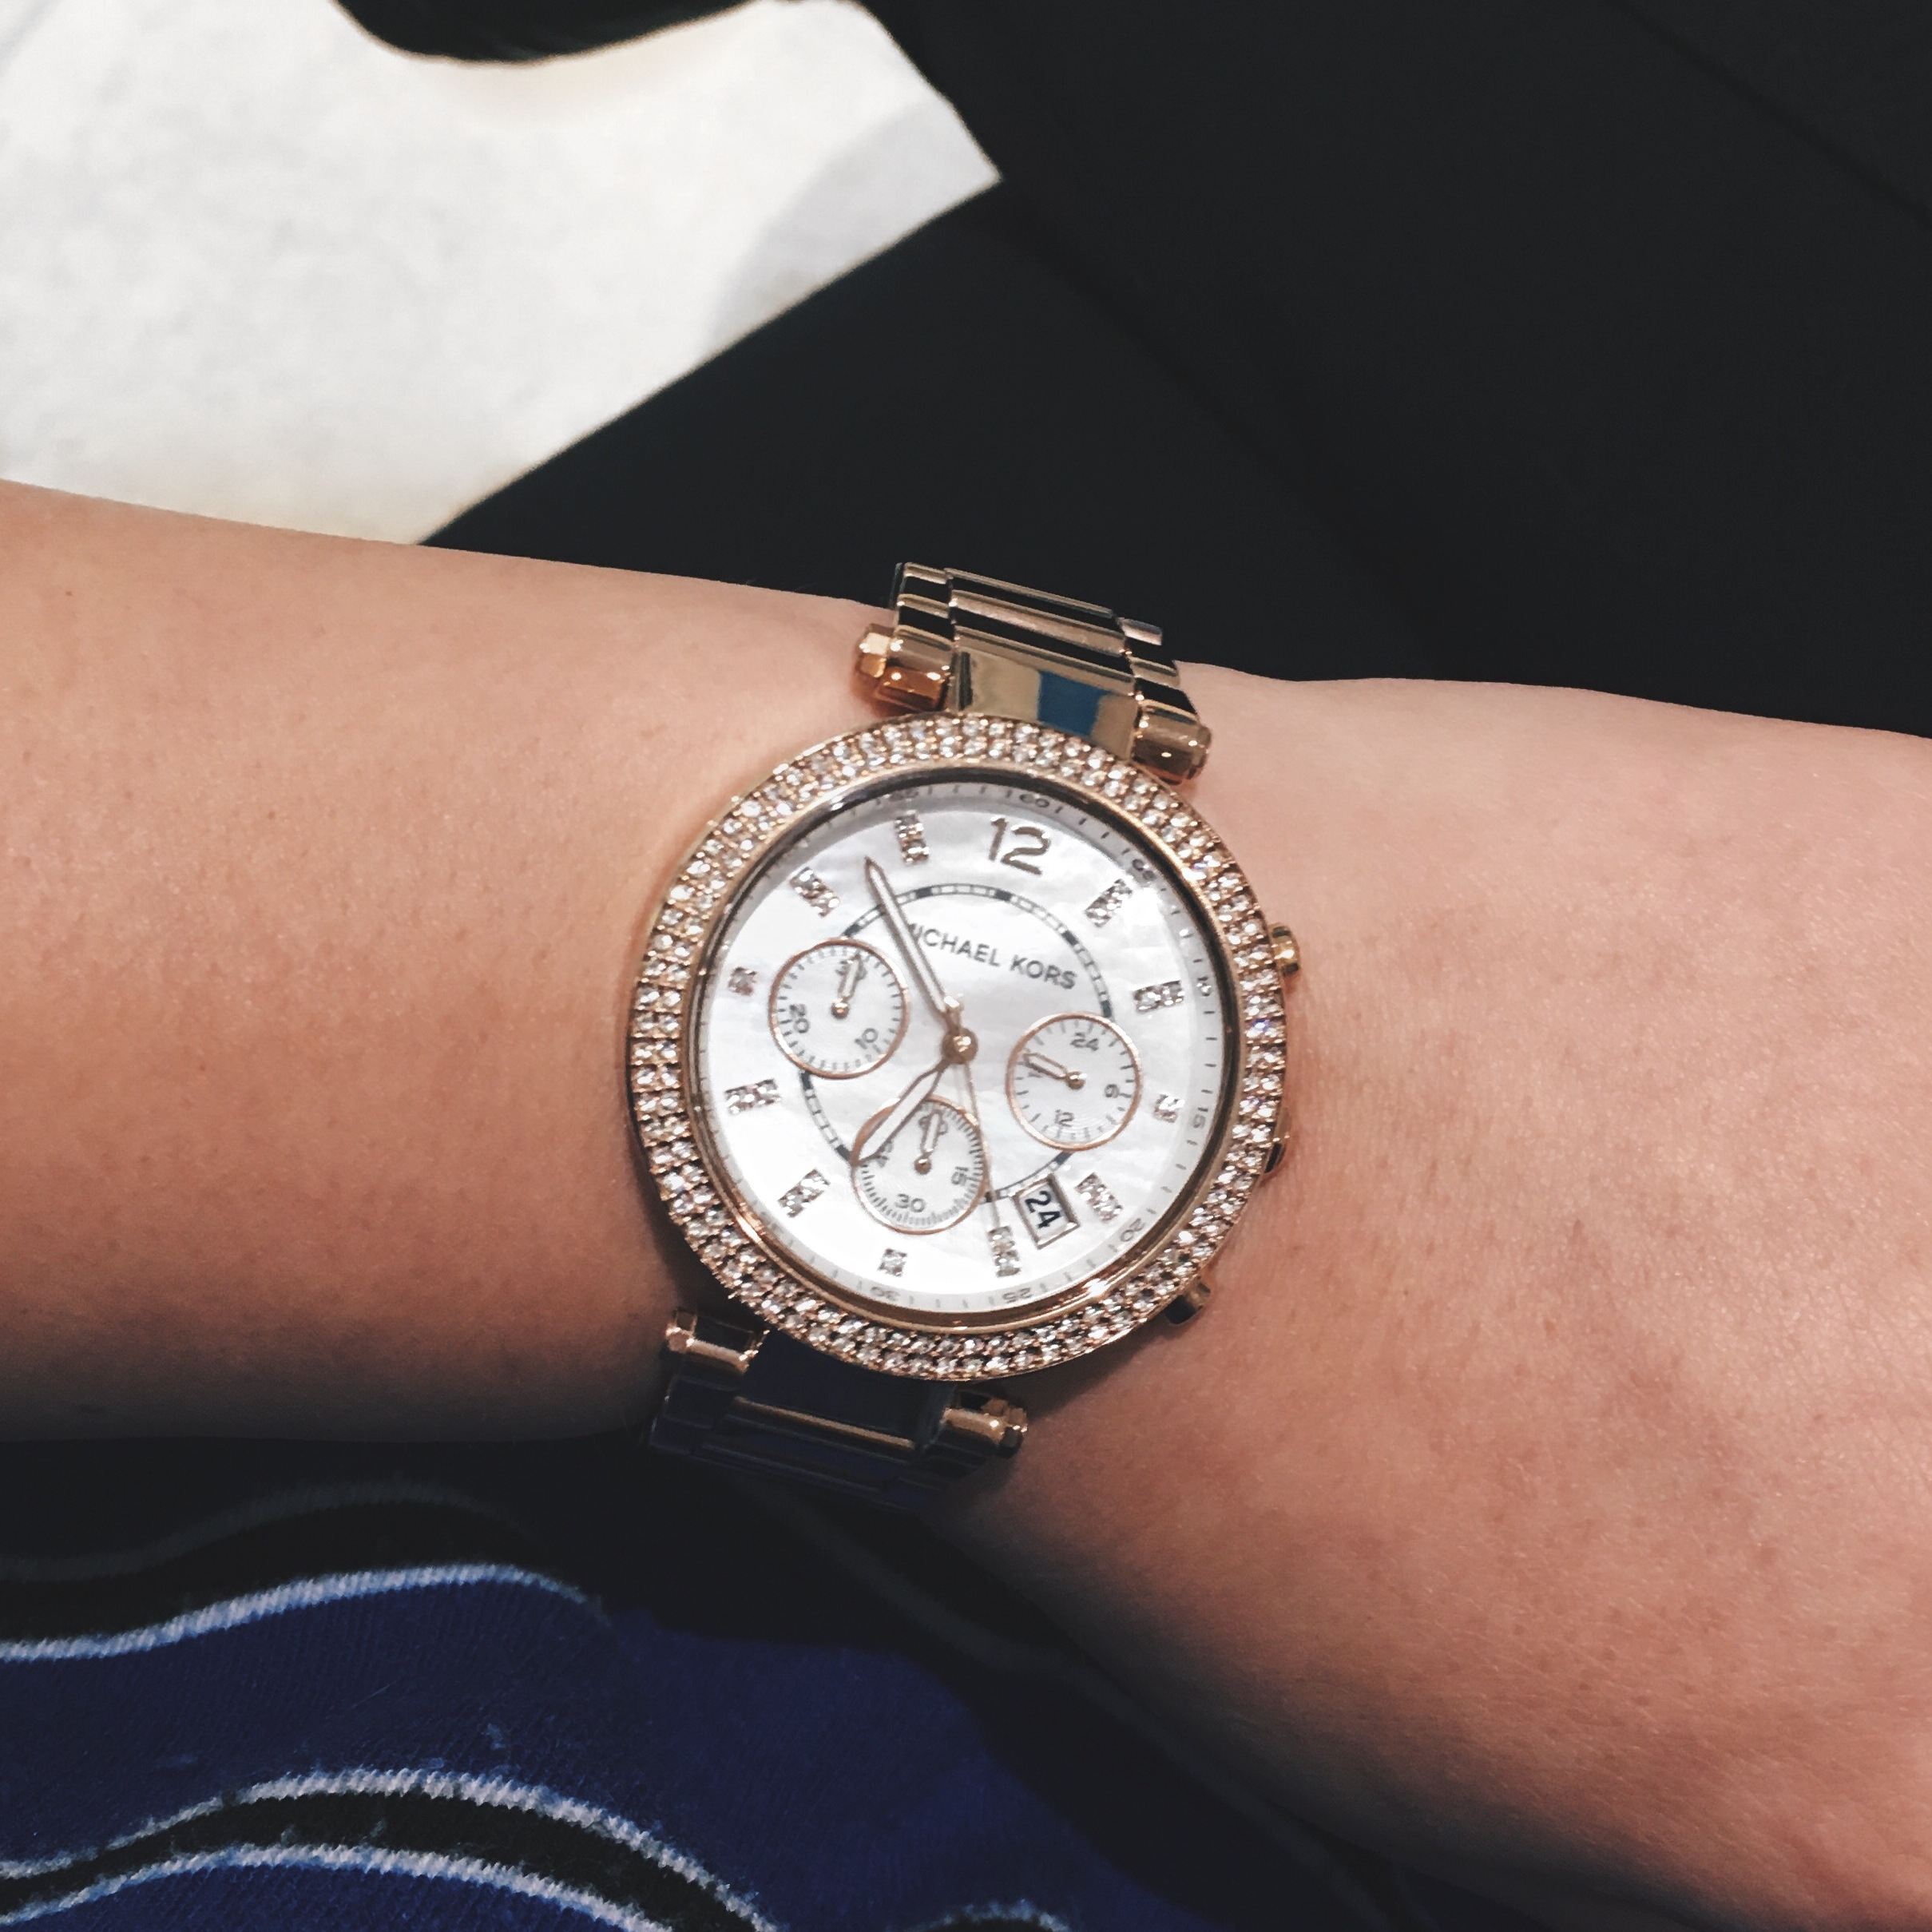 7526d36d315e This watch is gorgeous and at such a good price! When I first saw this  price